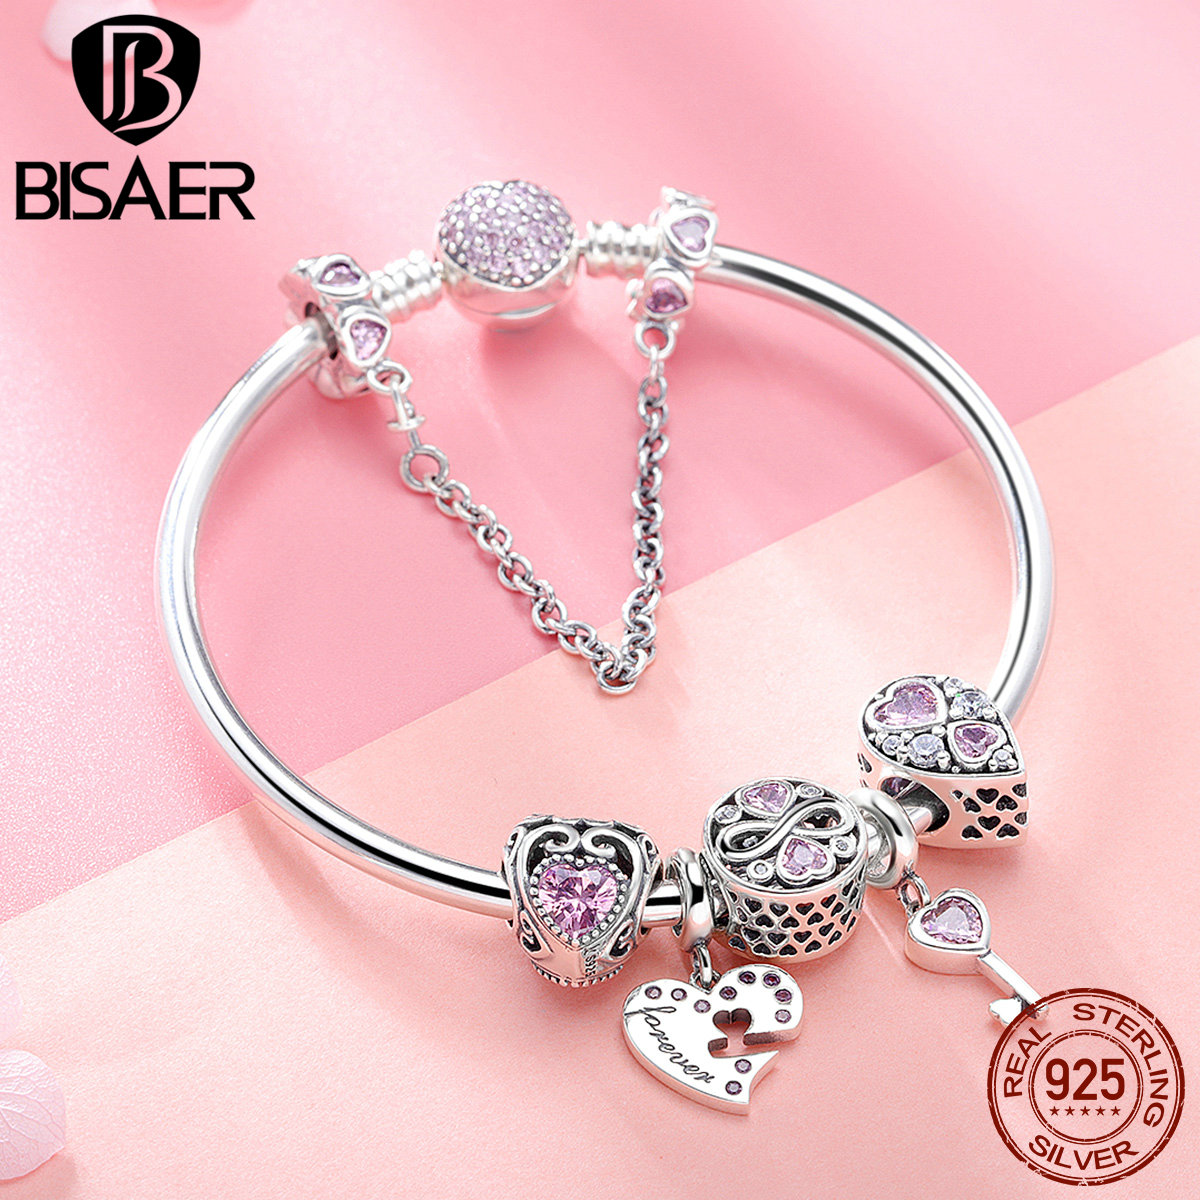 BISAER 7Pcs 925 Sterling Silver Heart Key And Locket Heart Pendant Brand Charm Bracelet For Women Wedding Silver Bangle GXB811 bisaer 7pcs 925 sterling silver heart key and locket heart pendant brand charm bracelet for women wedding silver bangle gxb811